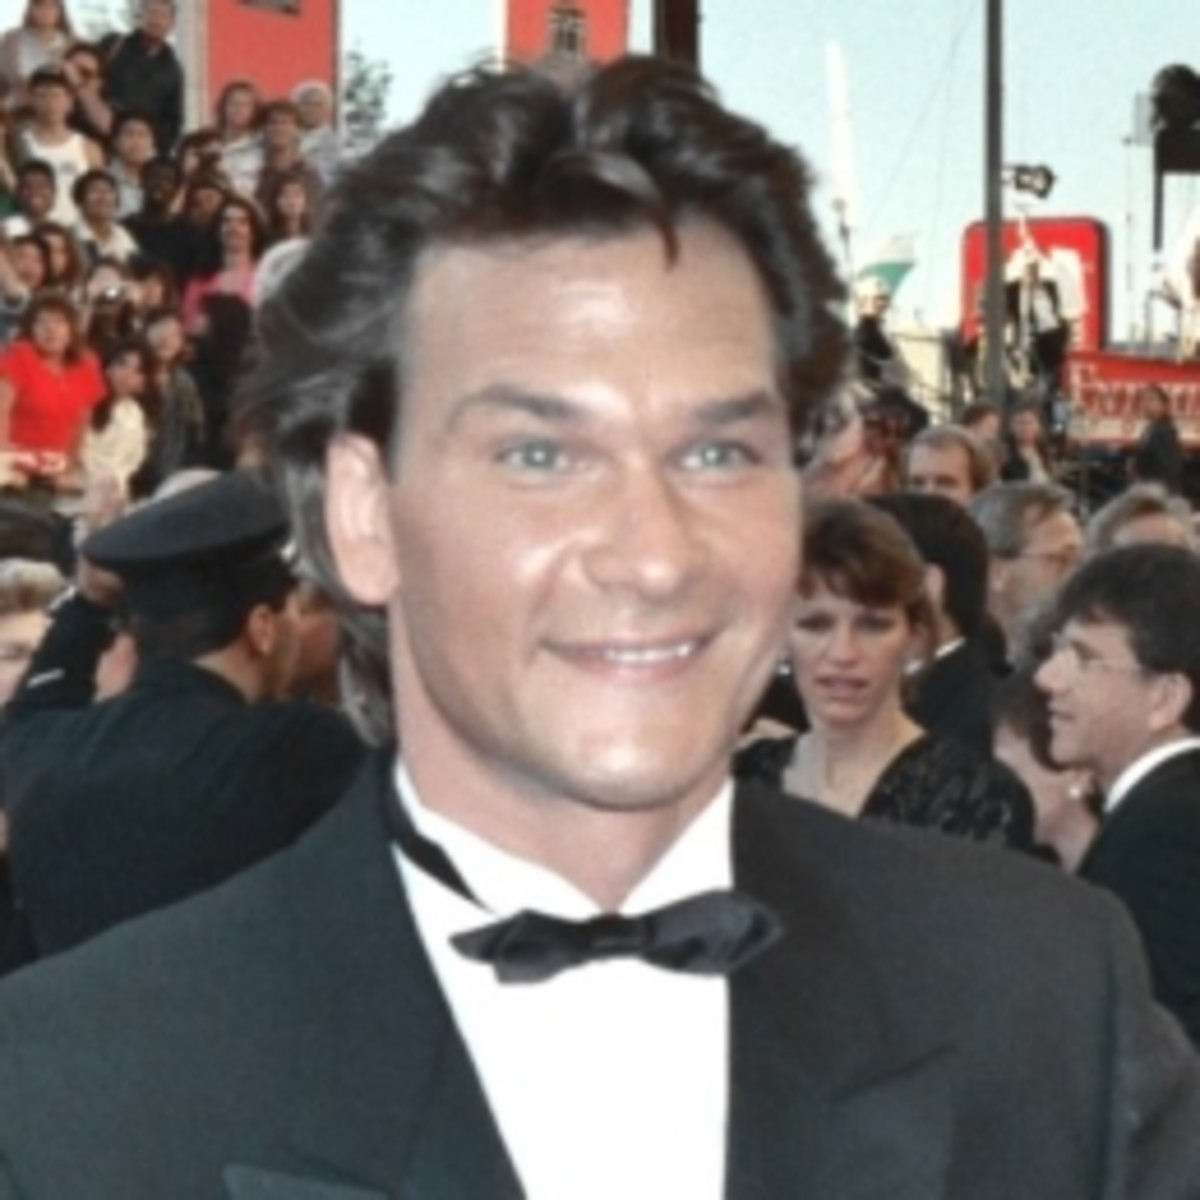 Patrick Swayze, married from 1975 until his death in 2009